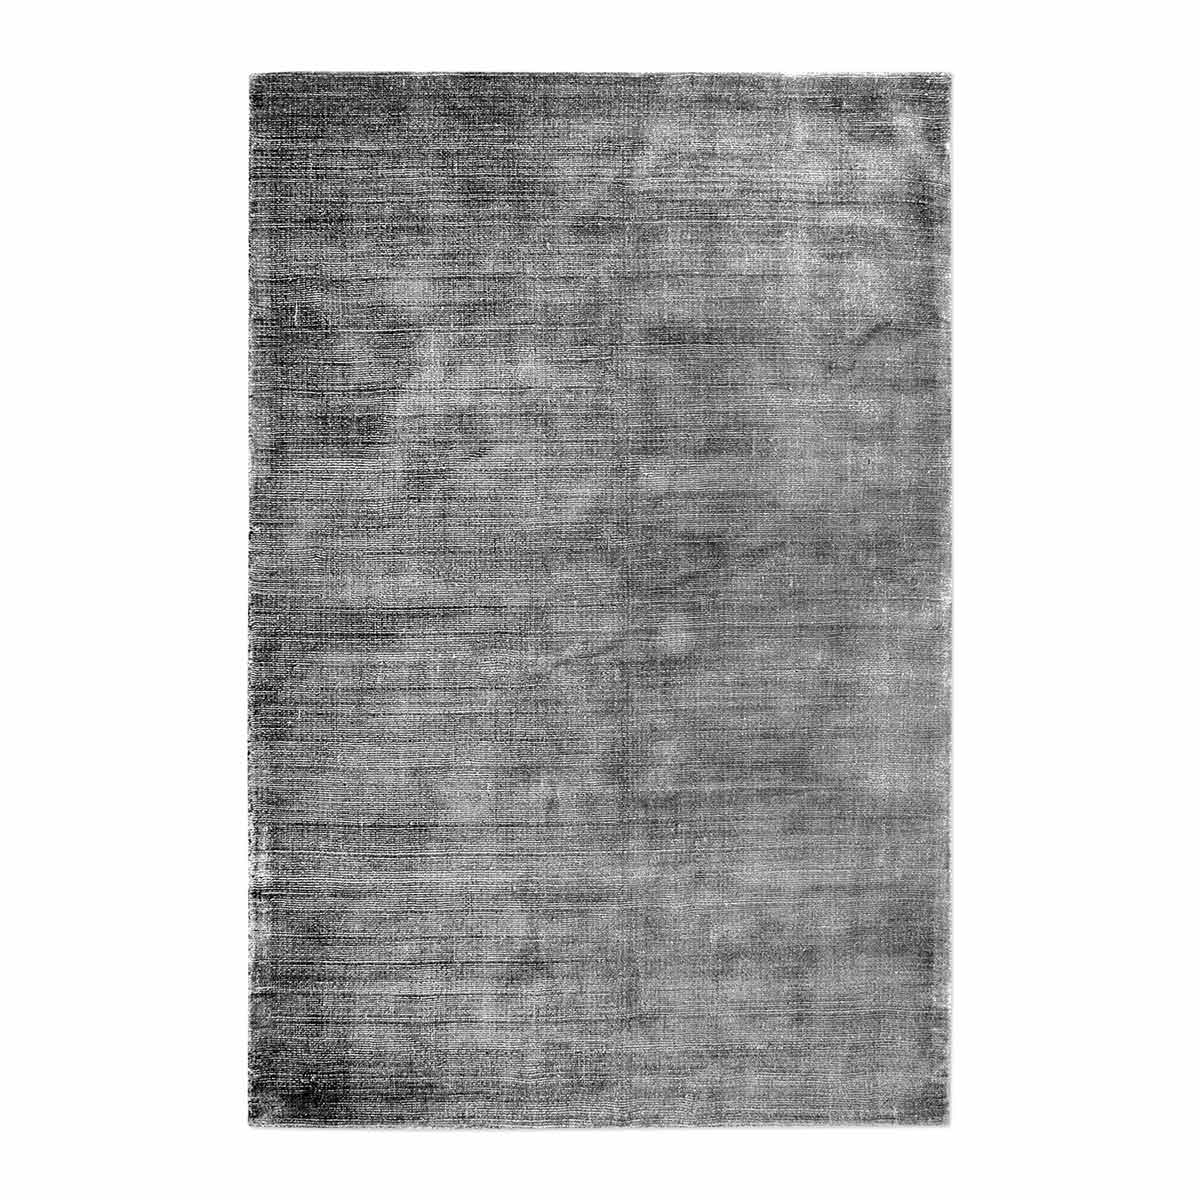 Uttermost Messini 8 x 10 Rug - Taupe